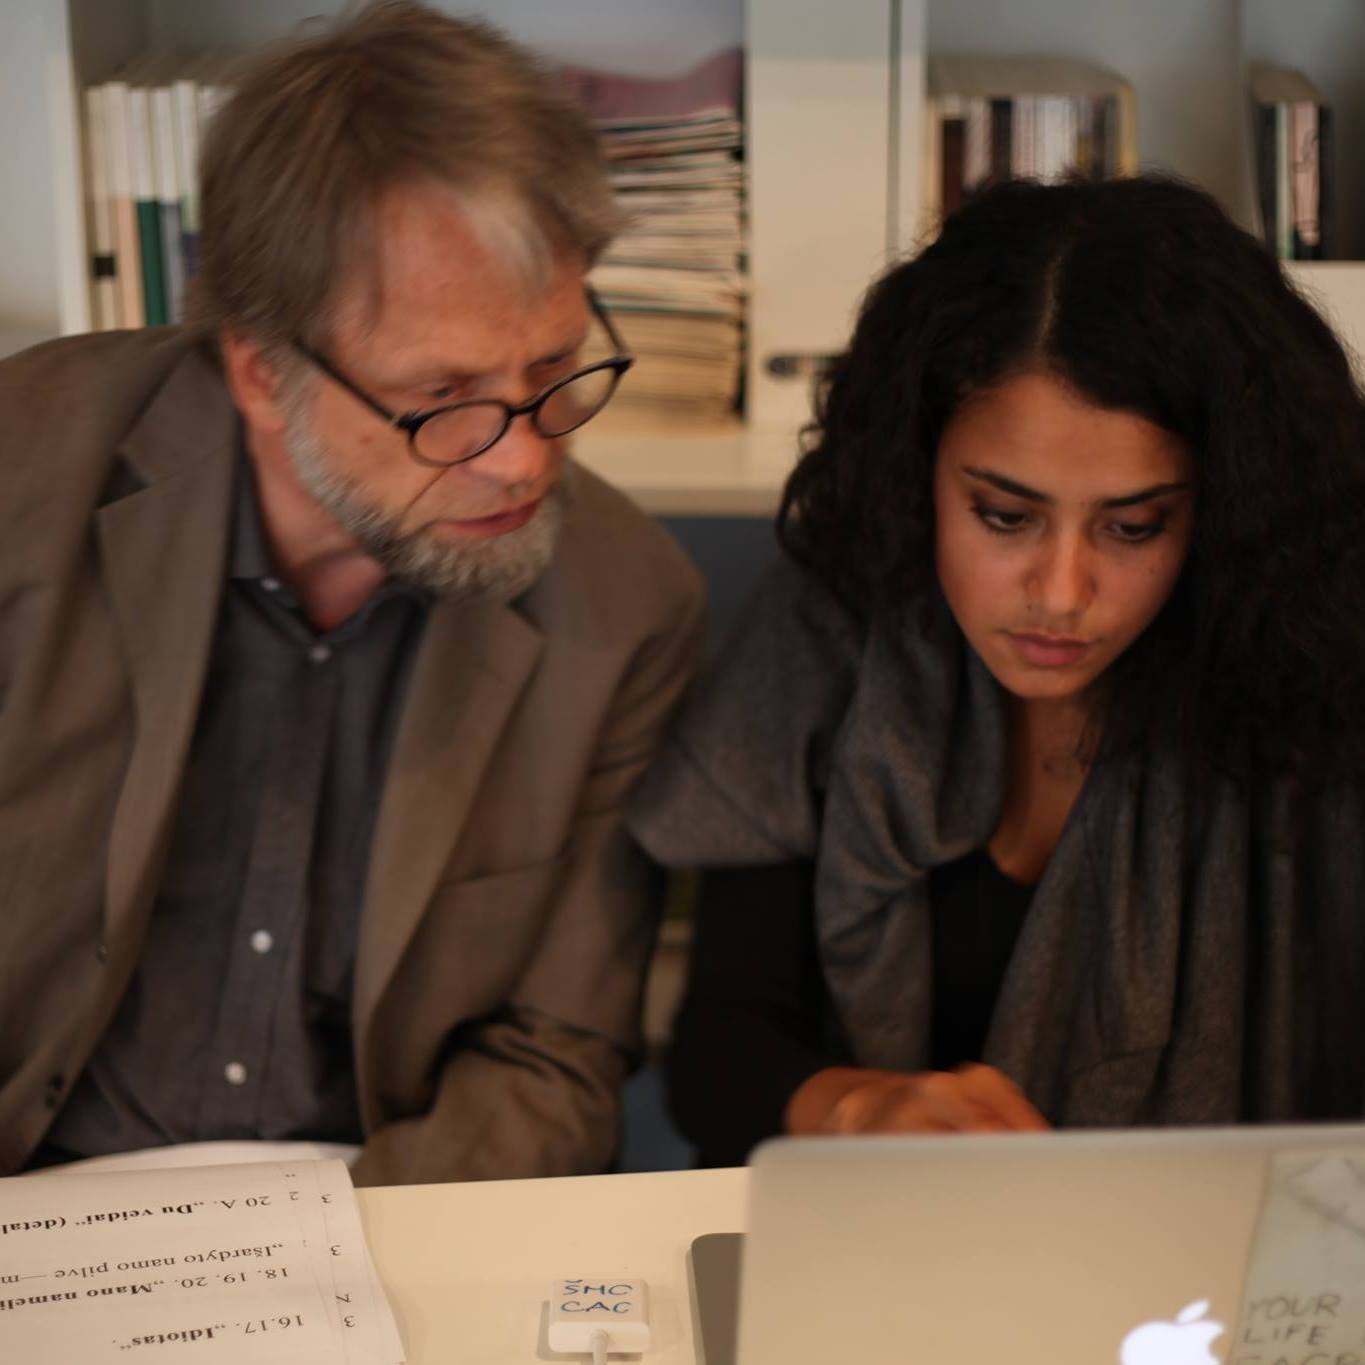 """Antanas Mockus and I working on Nijole's presentation """"Works and Reflexions"""" at the  Contemporary Art Center  of Vilnius."""